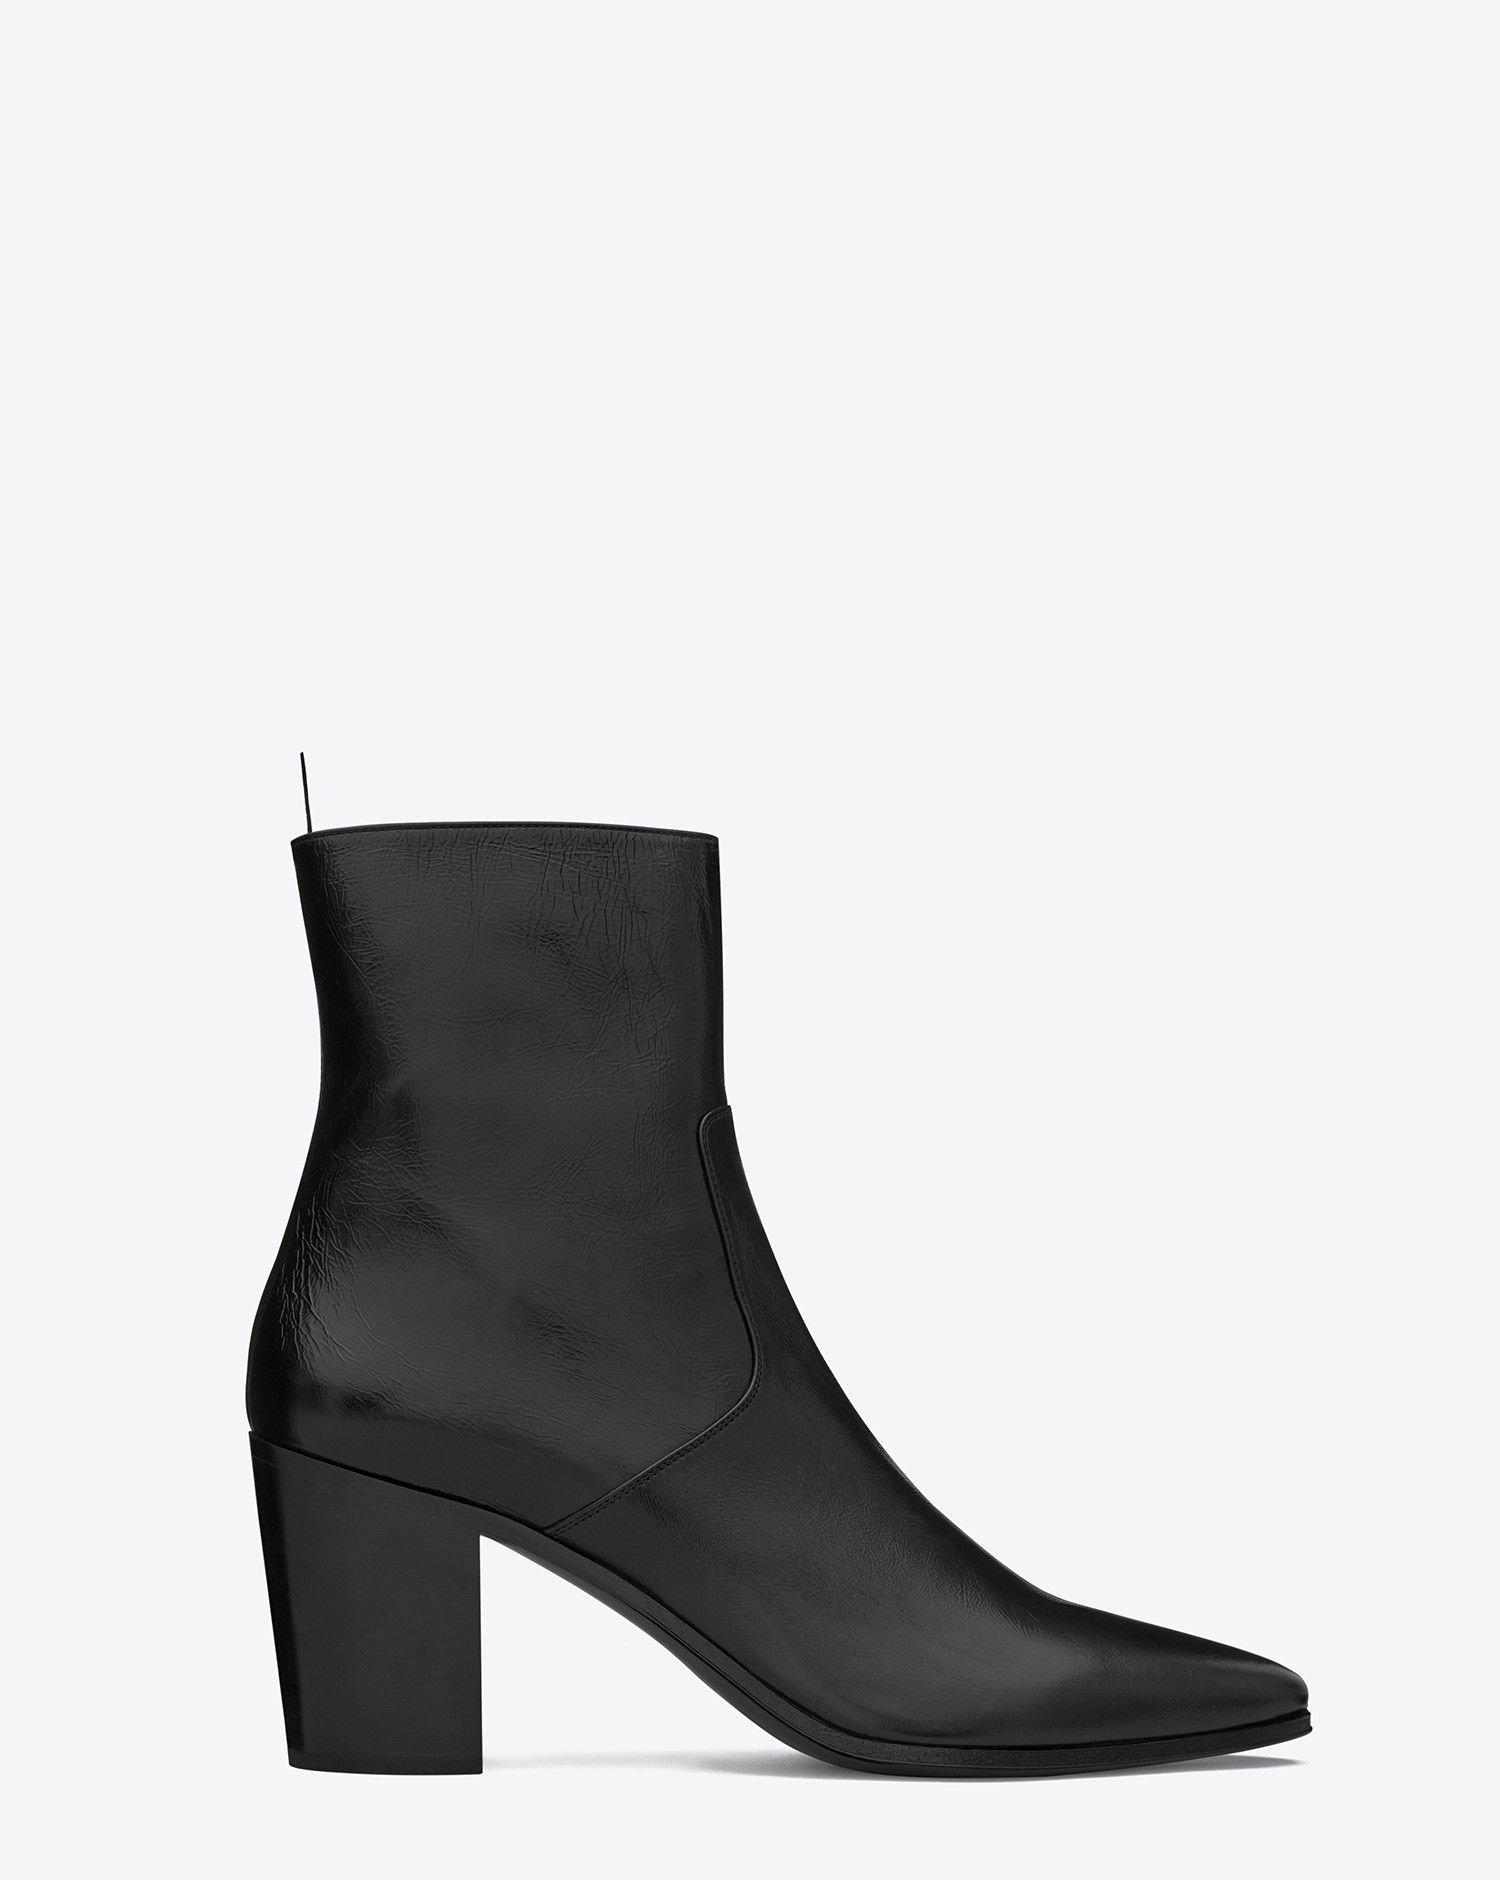 af5594dce7 Saint Laurent FRENCH 85 Zipped BOOT IN BLACK CRACKED Shiny LEATHER ...